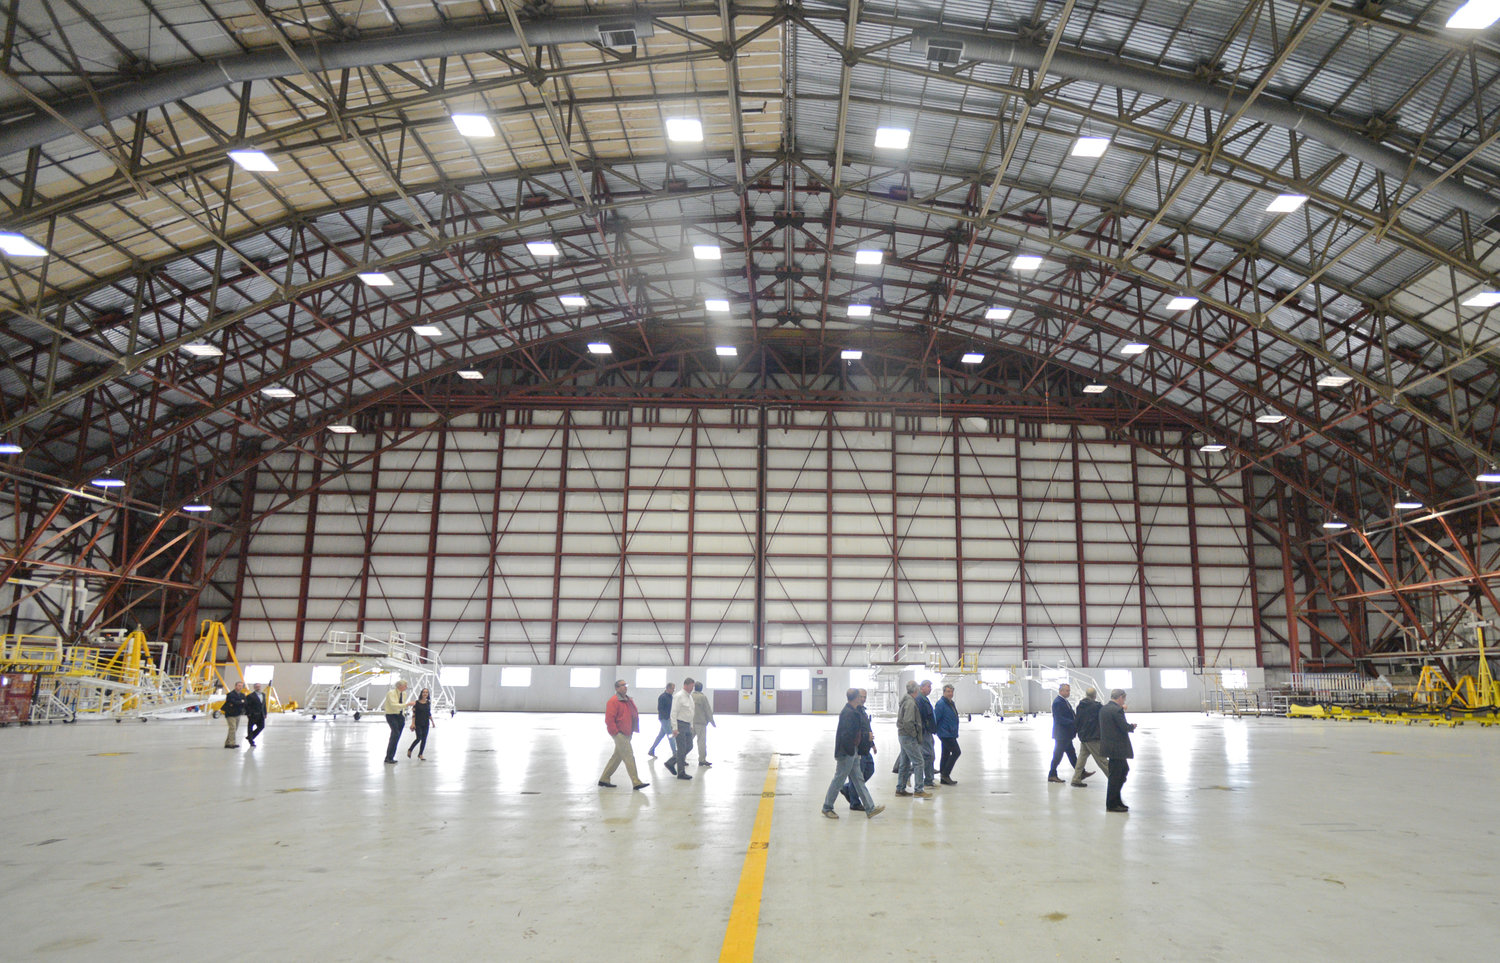 HANGAR TOUR — Oneida County legislators walk through one of the giant hangars that 747's can fit in at building 101 at Griffiss International Airport.